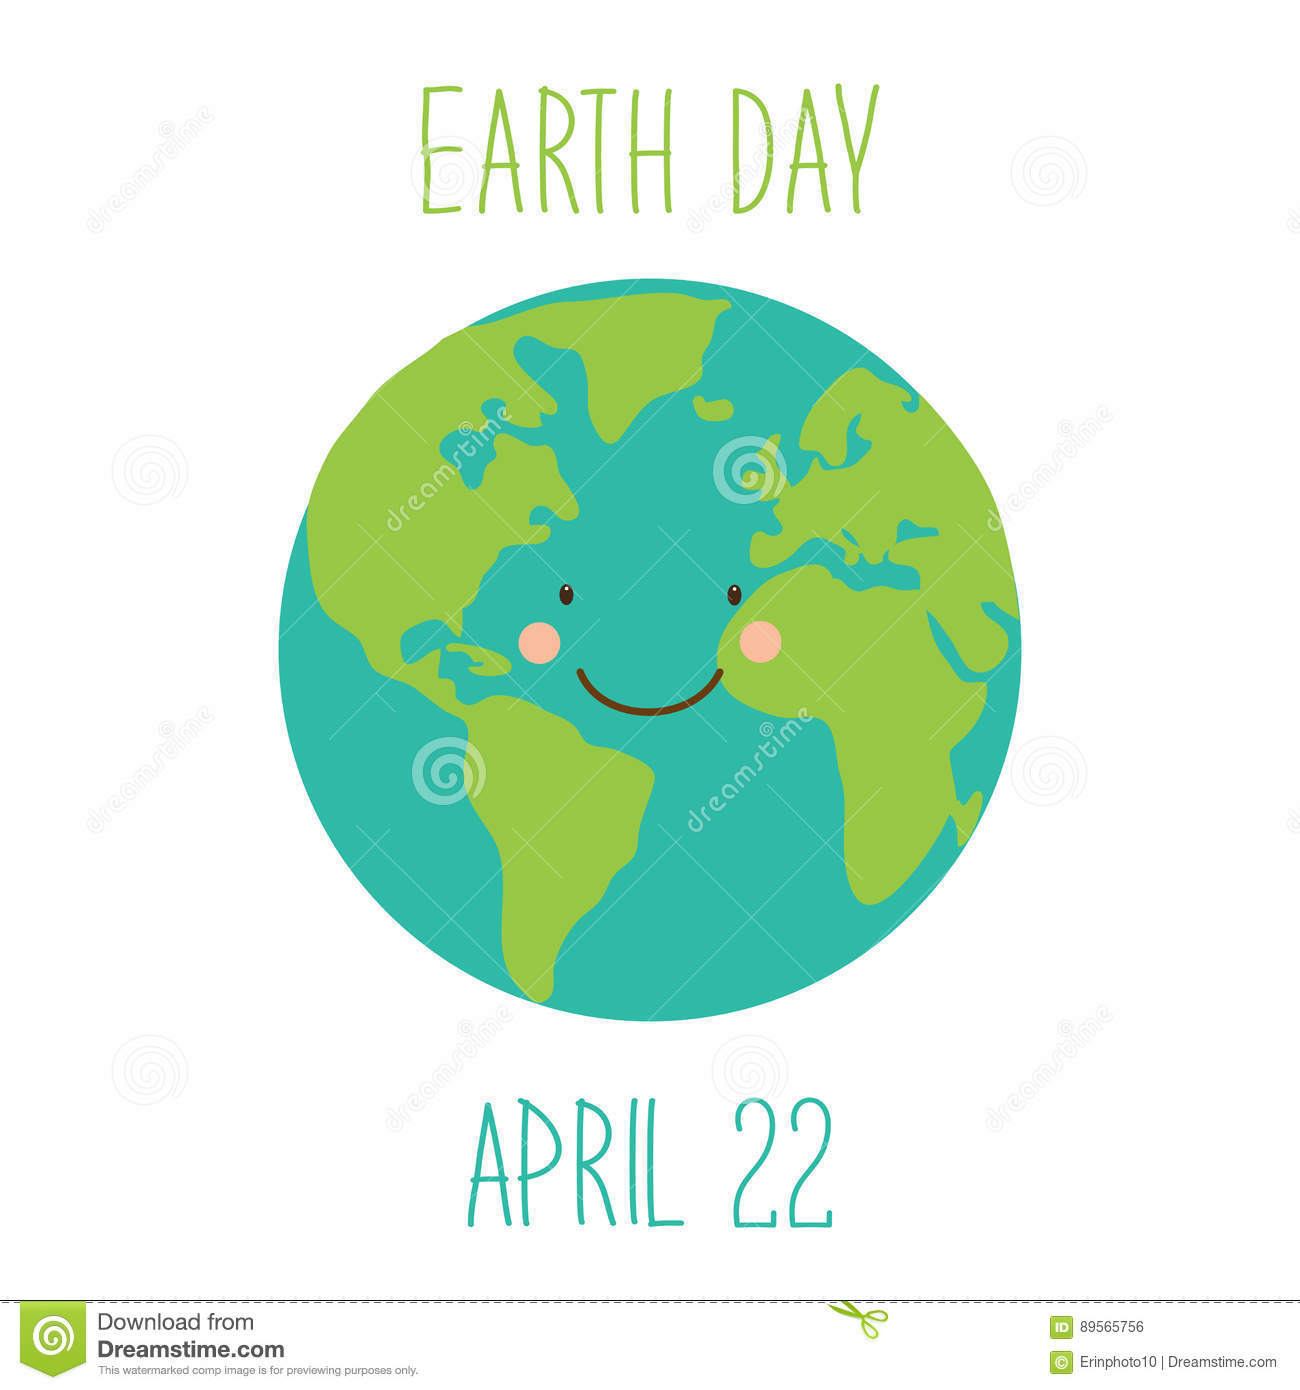 Earth day date in Perth